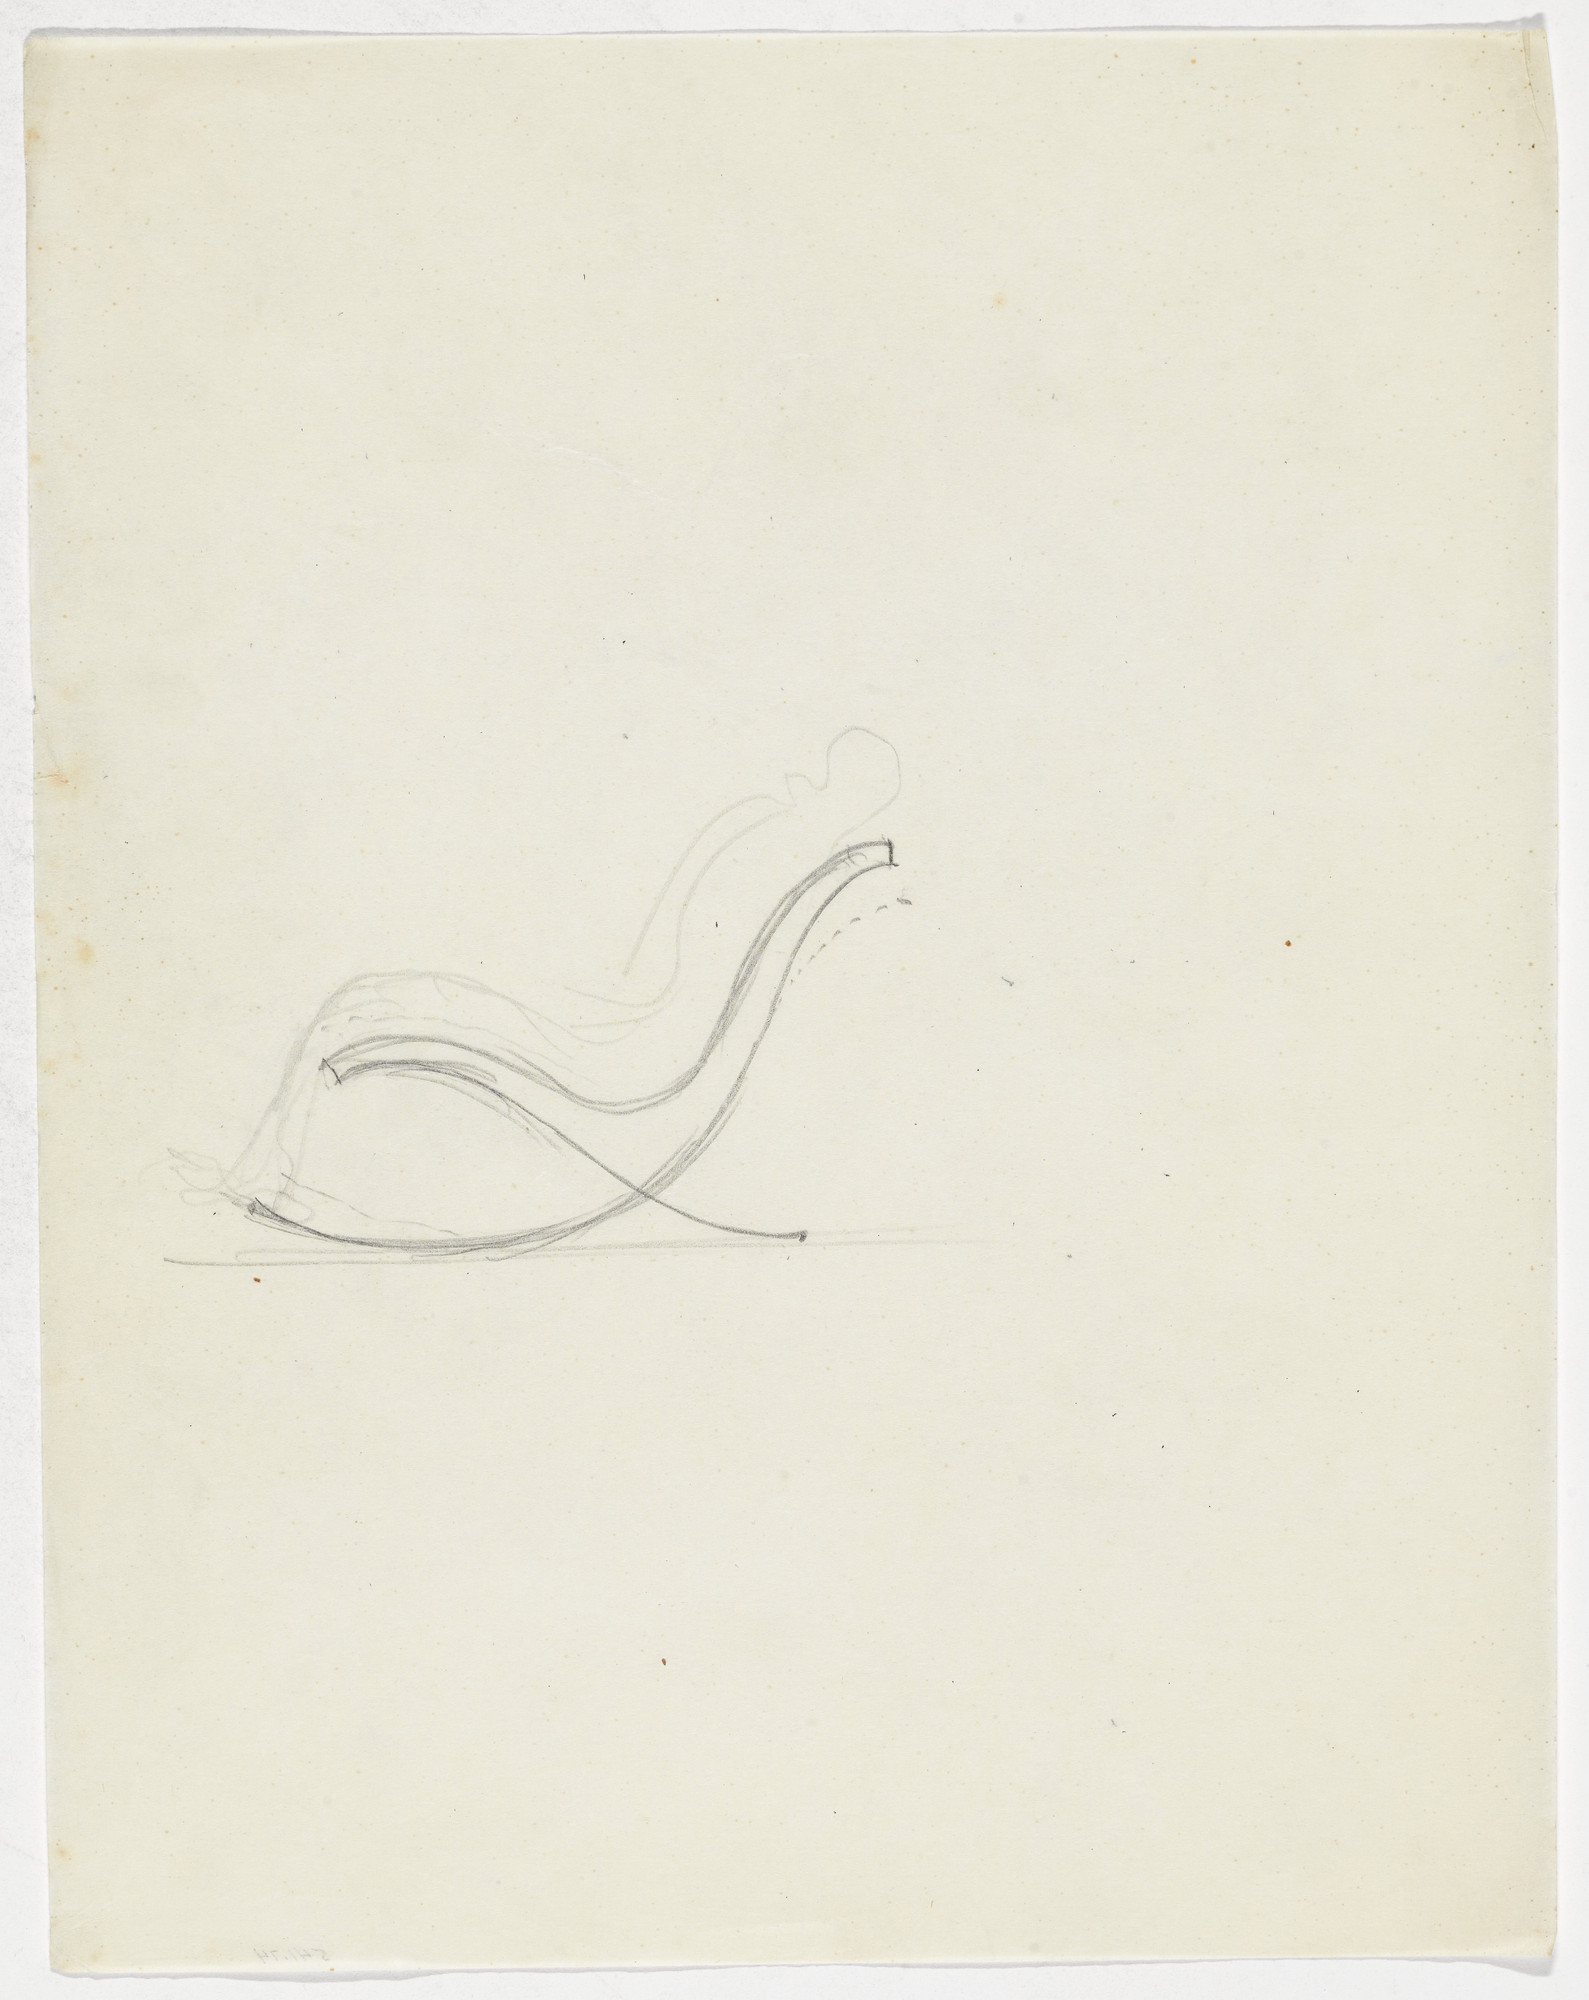 Ludwig Mies van der Rohe. Lounge Chair without Arms (Elevation sketch with figure). 1934